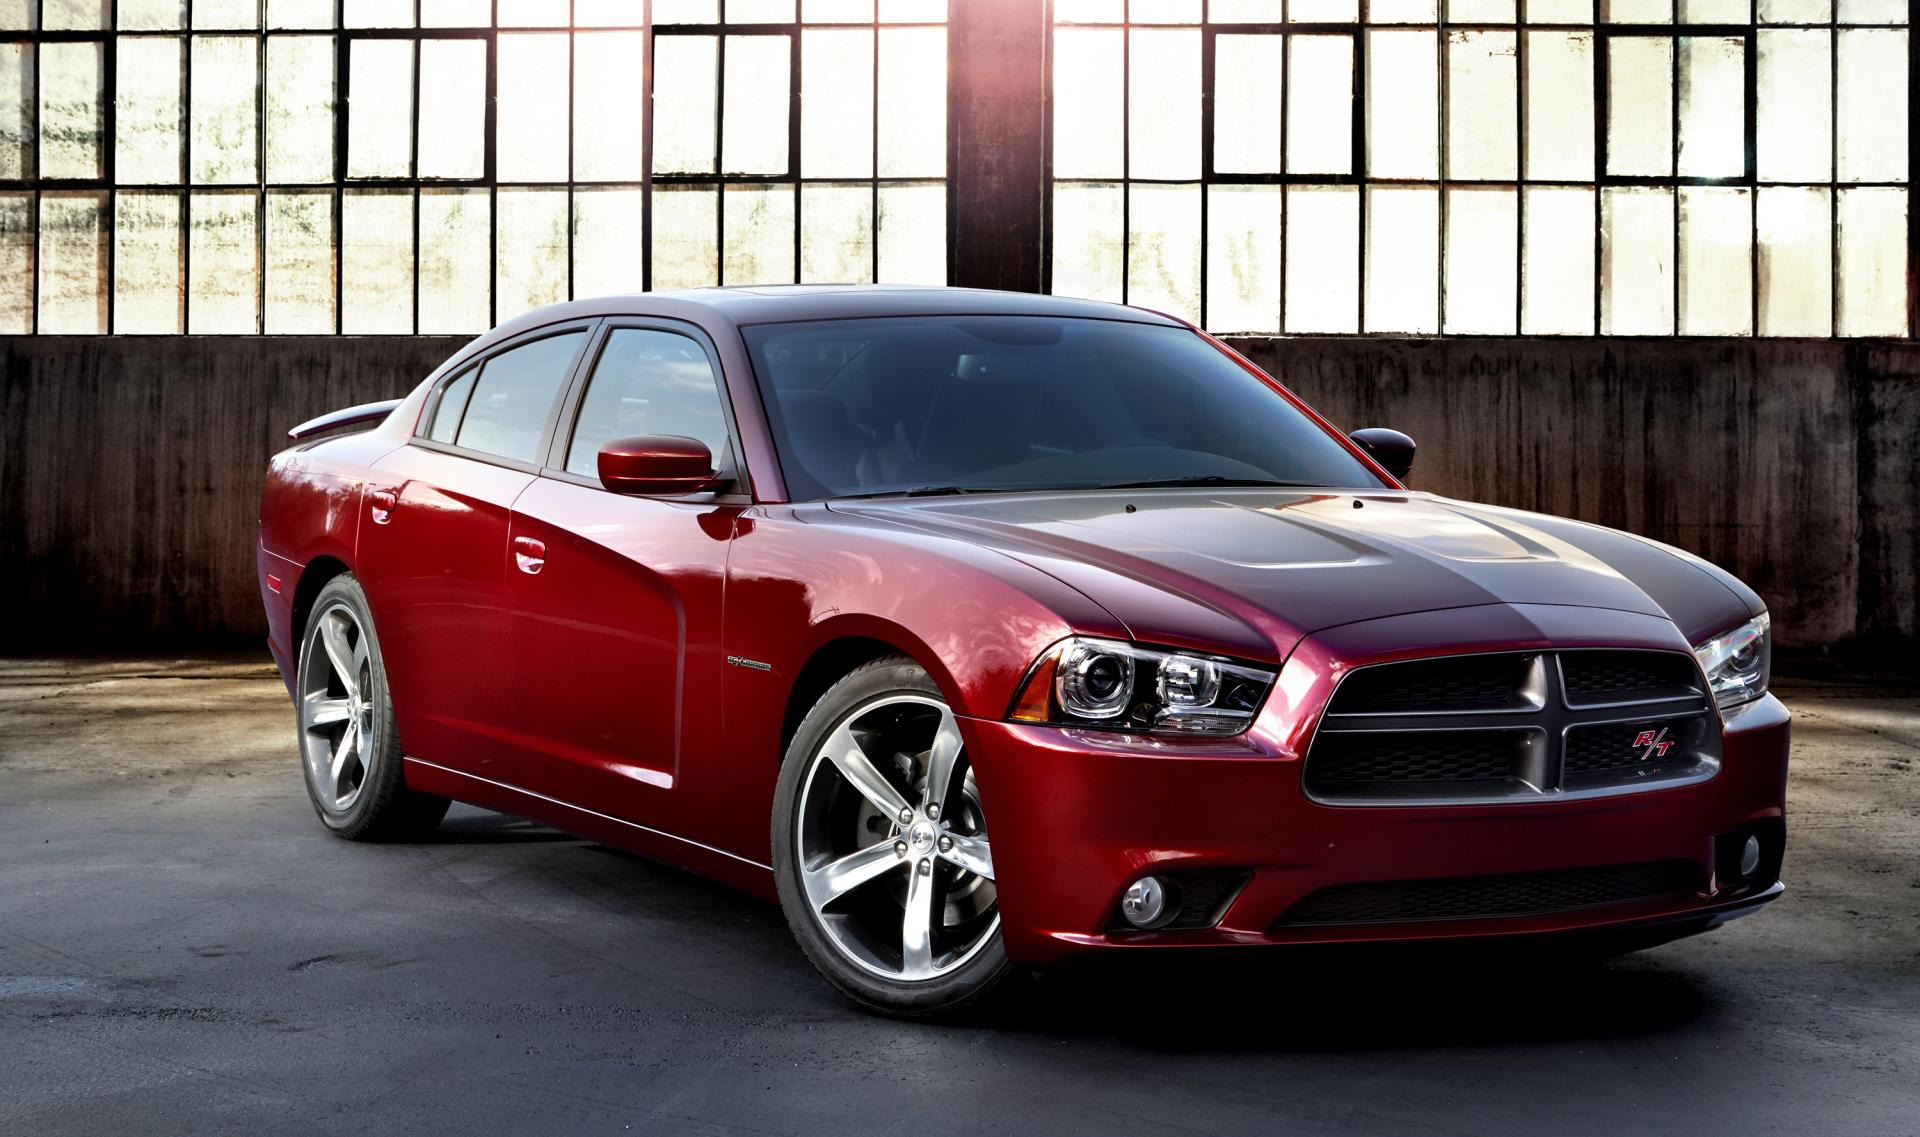 2014 Dodge Charger 100th Anniversary Edition conceptcarz com